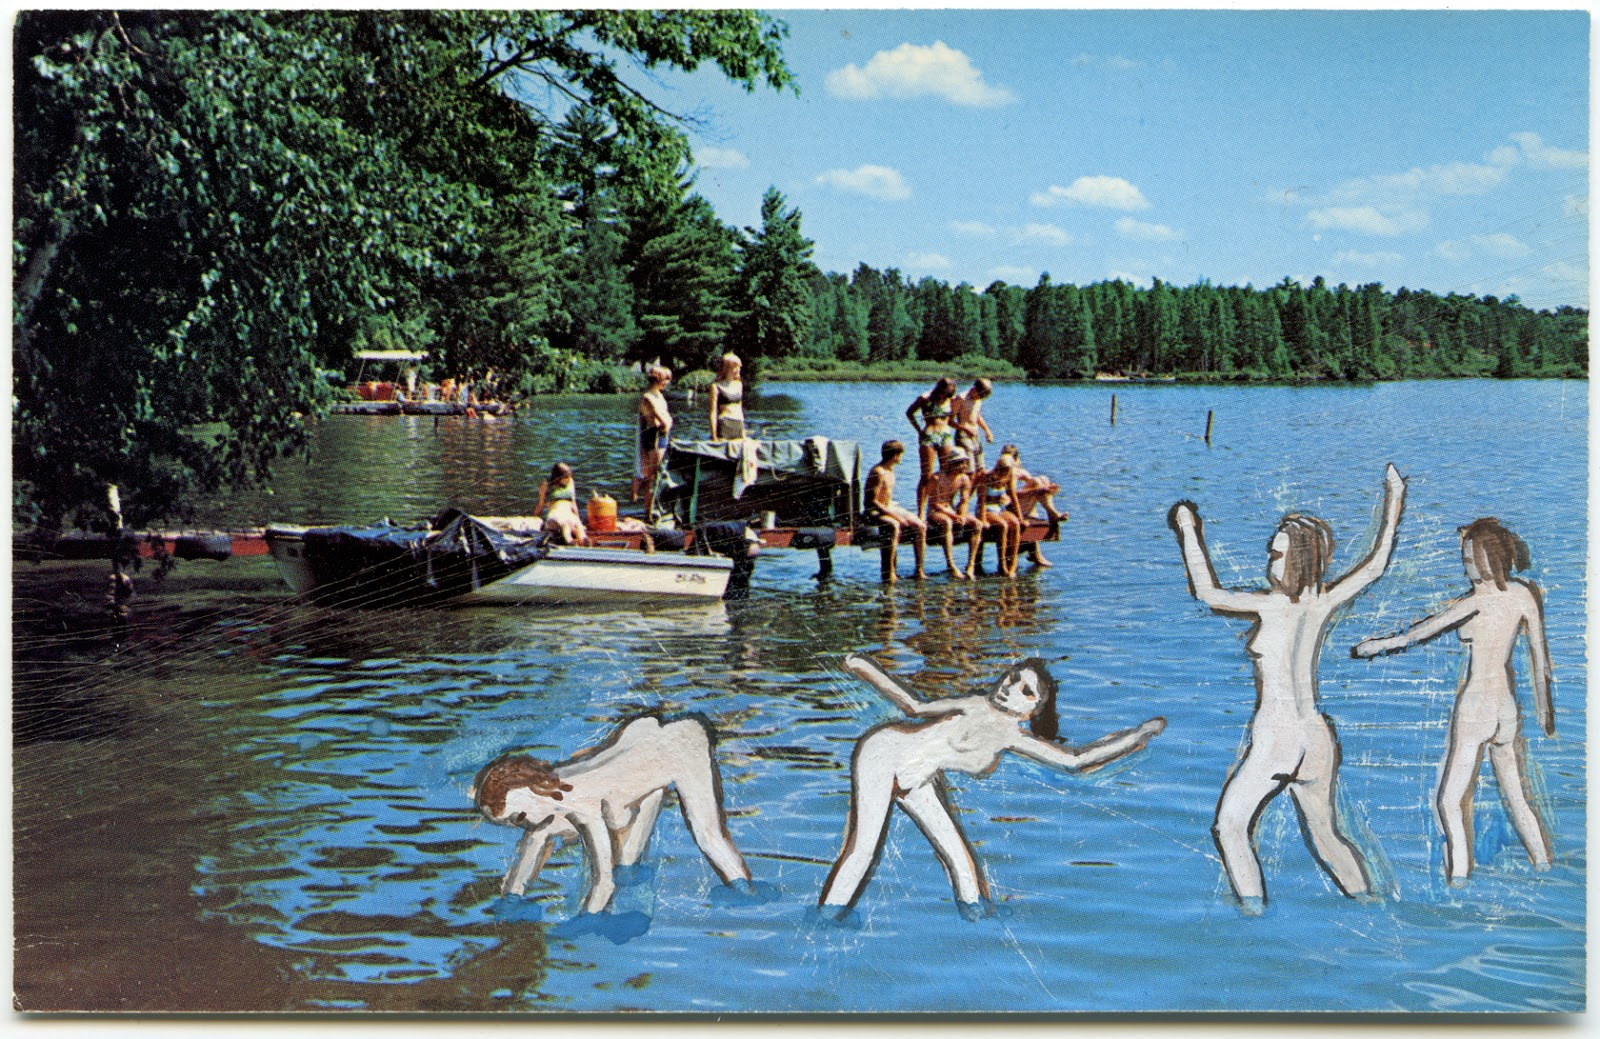 Nudist kids Pictures these militant nudists are taunting the lutheran bible camp kids.